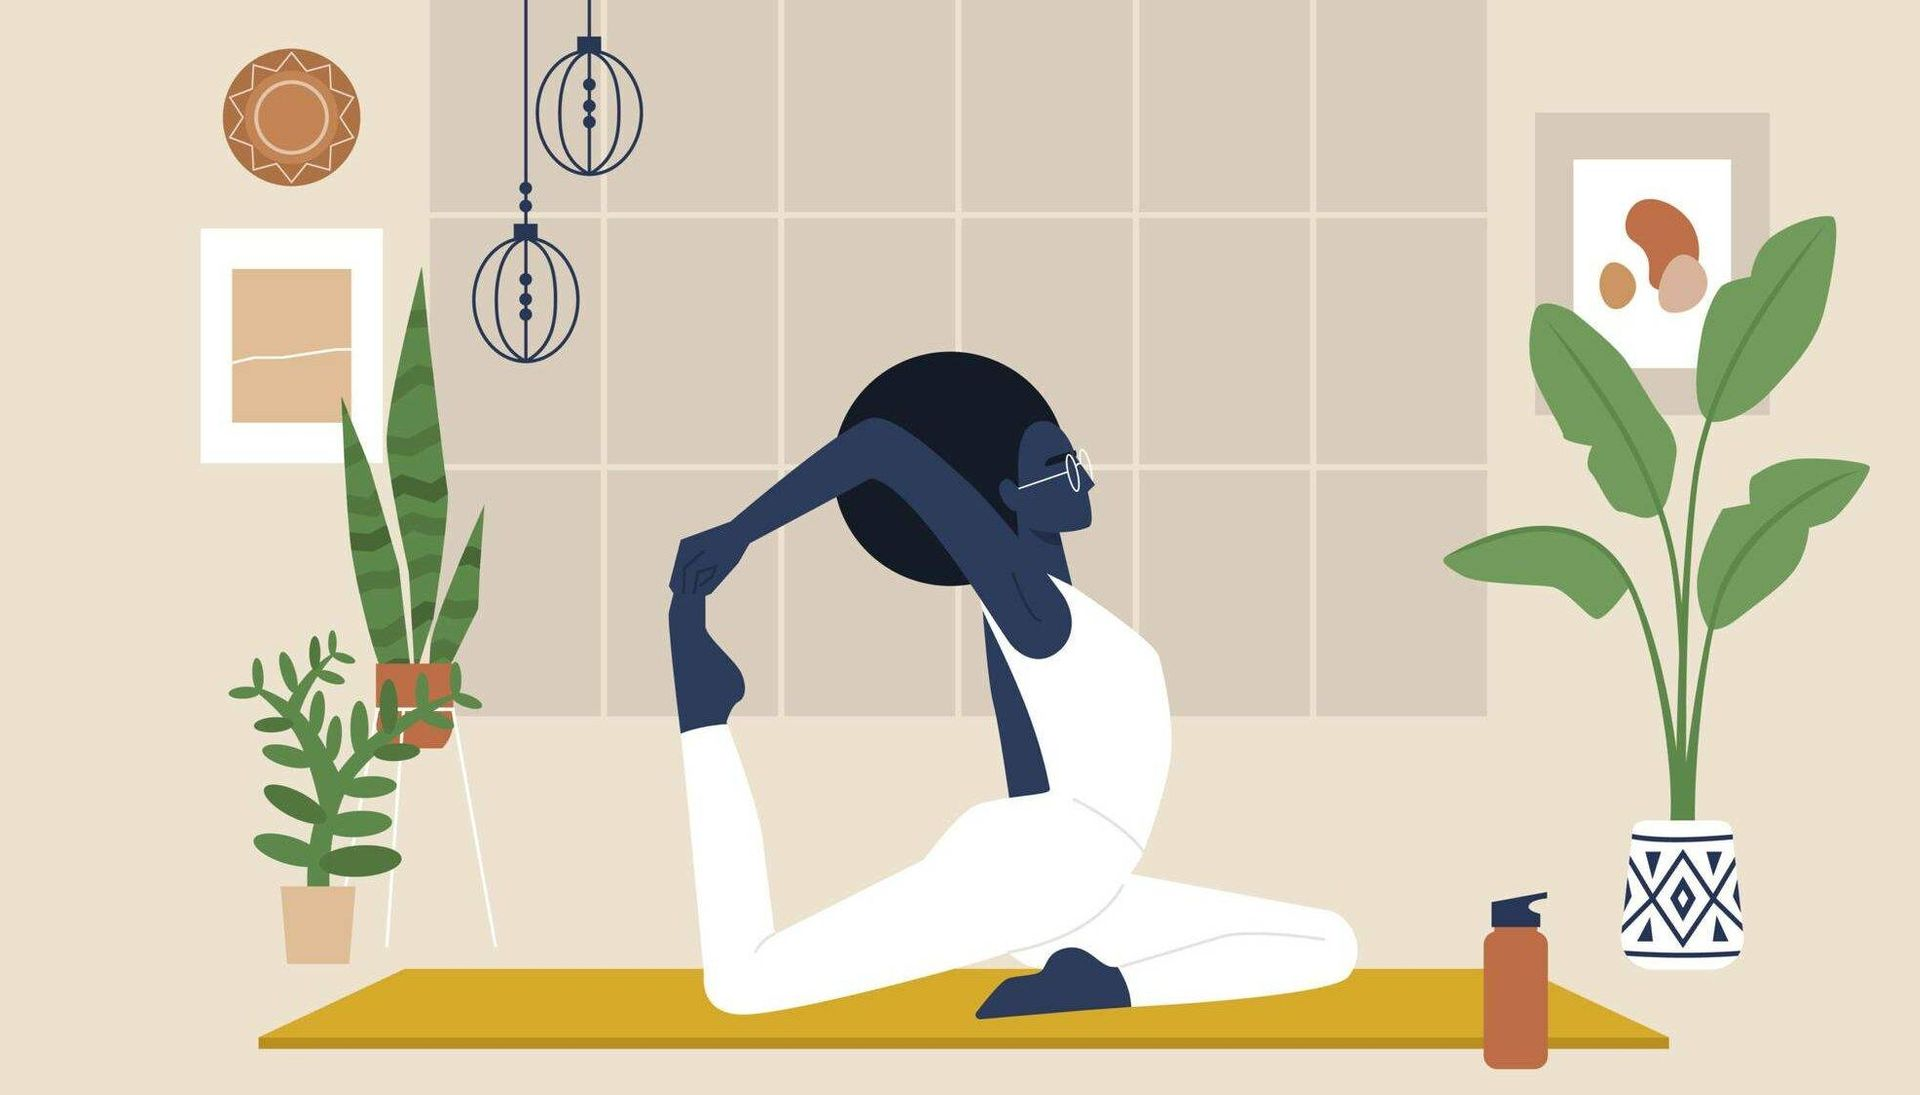 Illustration of woman doing yoga inside, surrounded by housplants